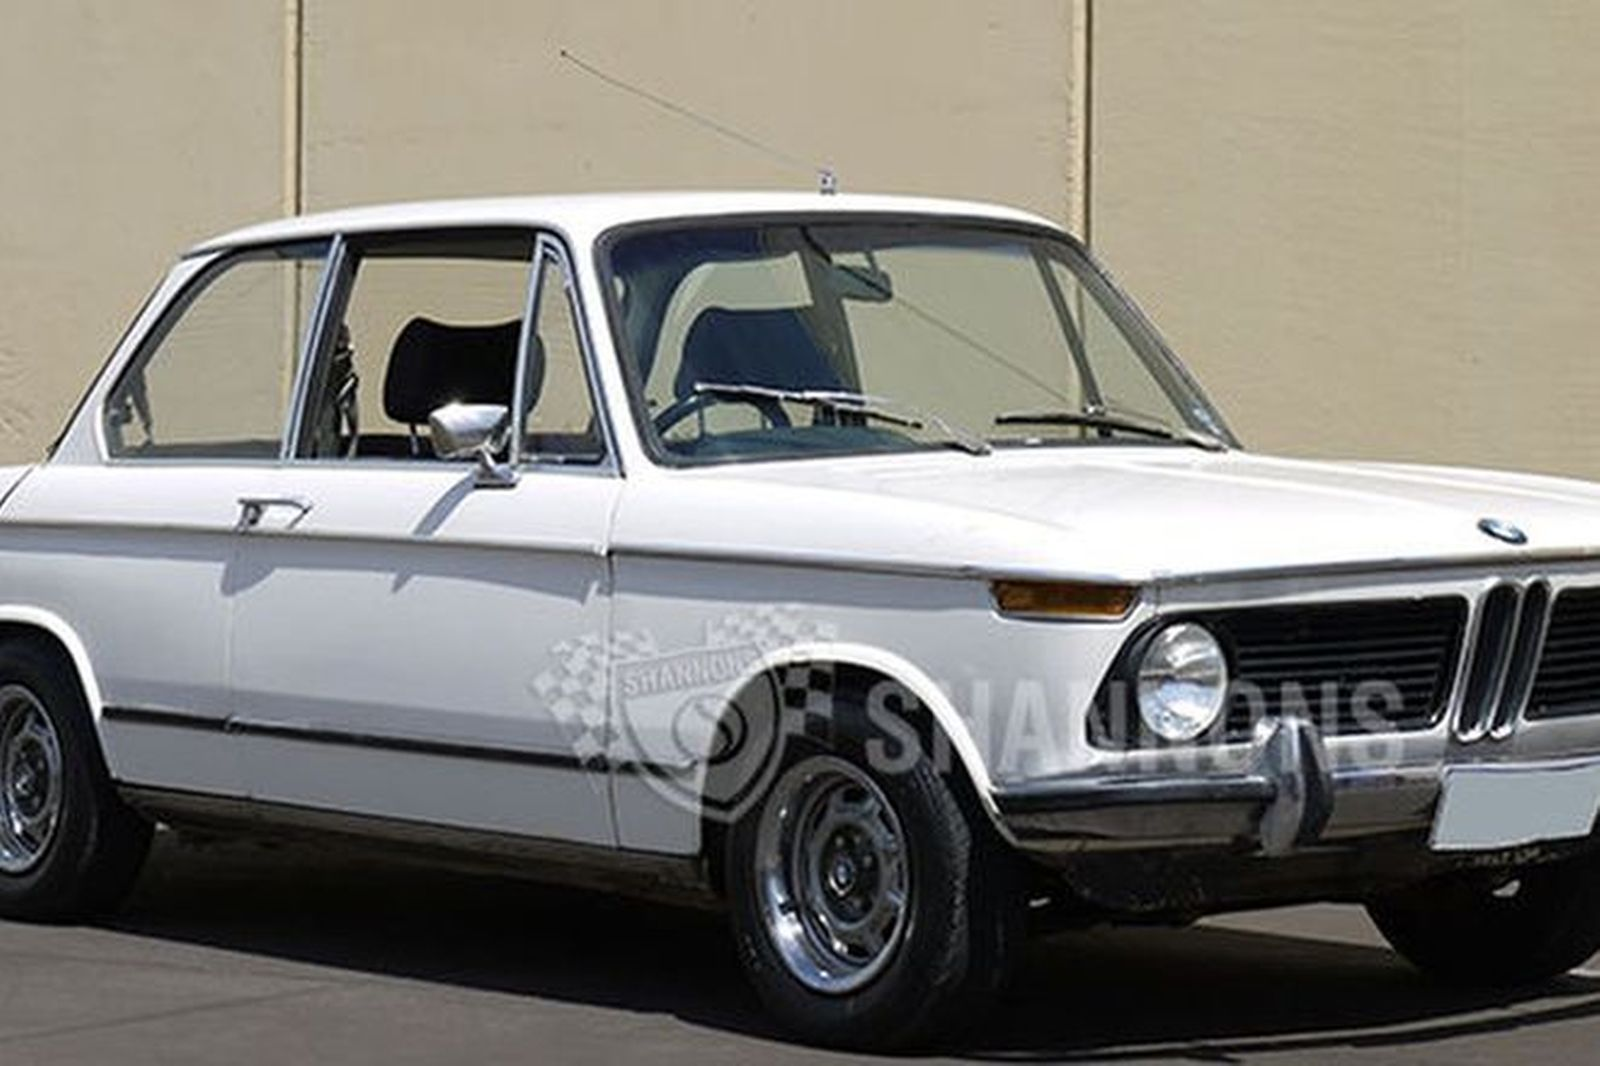 BMW 5 Series 1971 bmw 2002 specs Sold: BMW 2002 Coupe Auctions - Lot 1 - Shannons